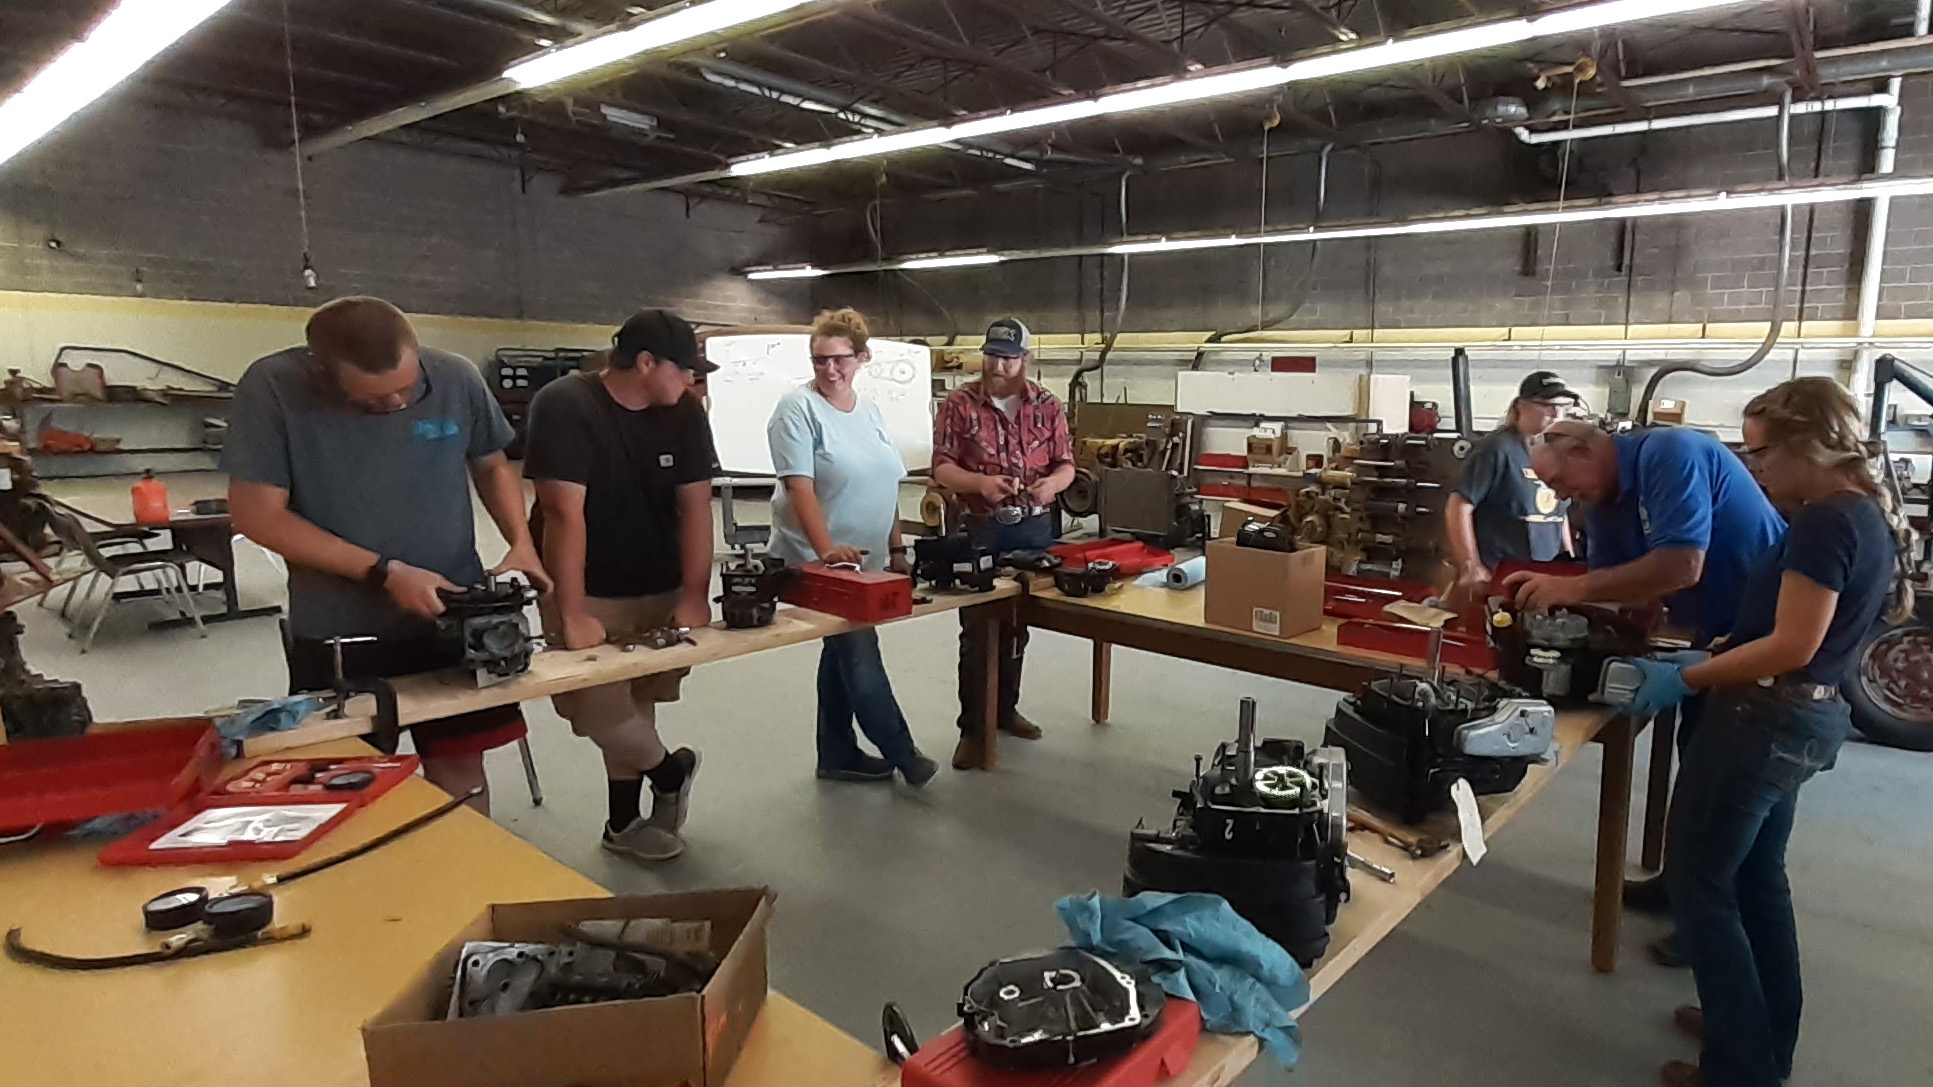 Small engines was one of the half-day sessions at the recent Ag Mechanics Boot Camp at the Nebraska College of Technical Agriculture in Curtis. Six agricultural educators attended the hands-on camp taught by Dan Stehlik, NCTA instructor (in blue shirt, second from right).  (Photo by Andela Taylor / NCTA)